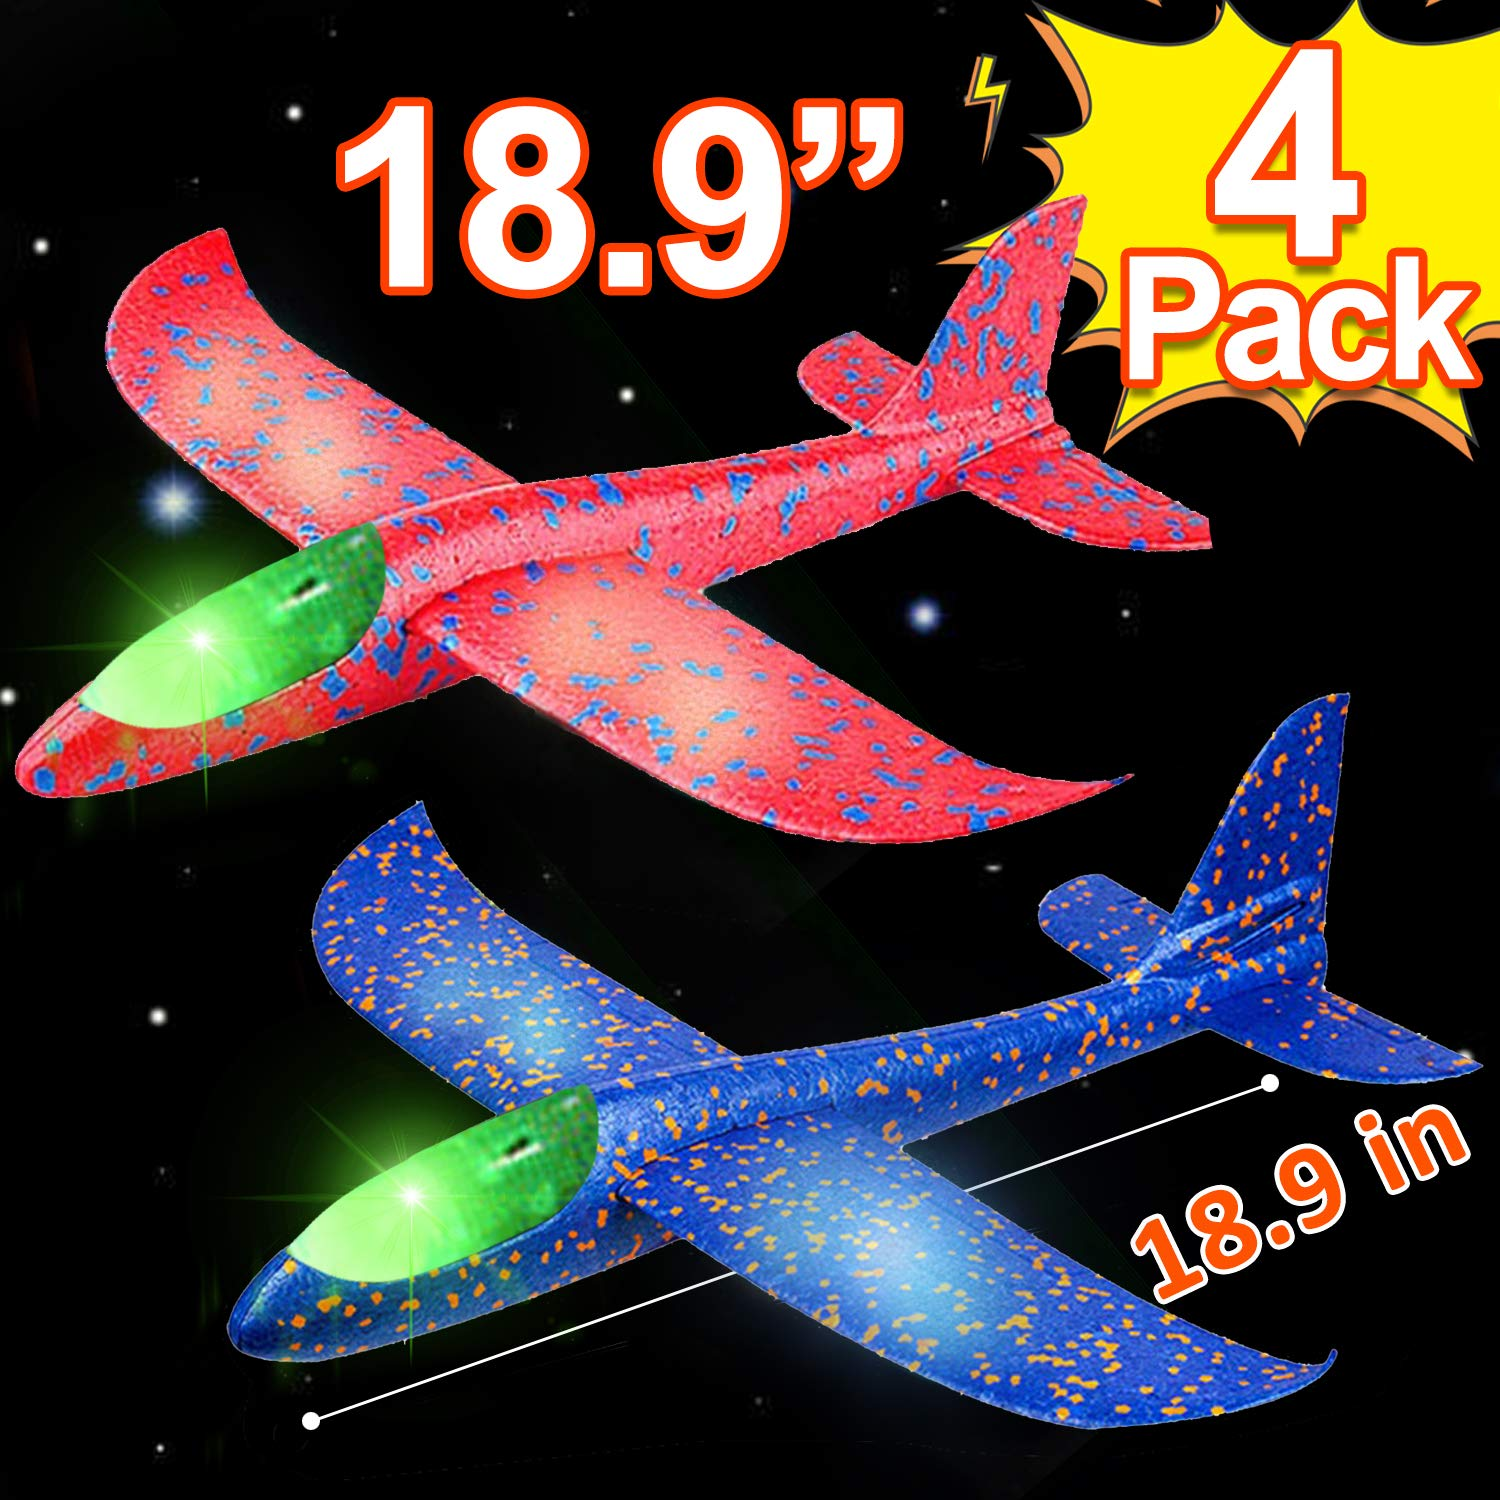 4 Pack 18.9'' Large Throwing Foam Airplane Toys with Dual Flight Mode LED Light Up Glider Planes Flying Aircraft Gifts for Kids 3 4 5 6 7 Year Up Boy Girls Toddlers Outdoor Sport Game Toys